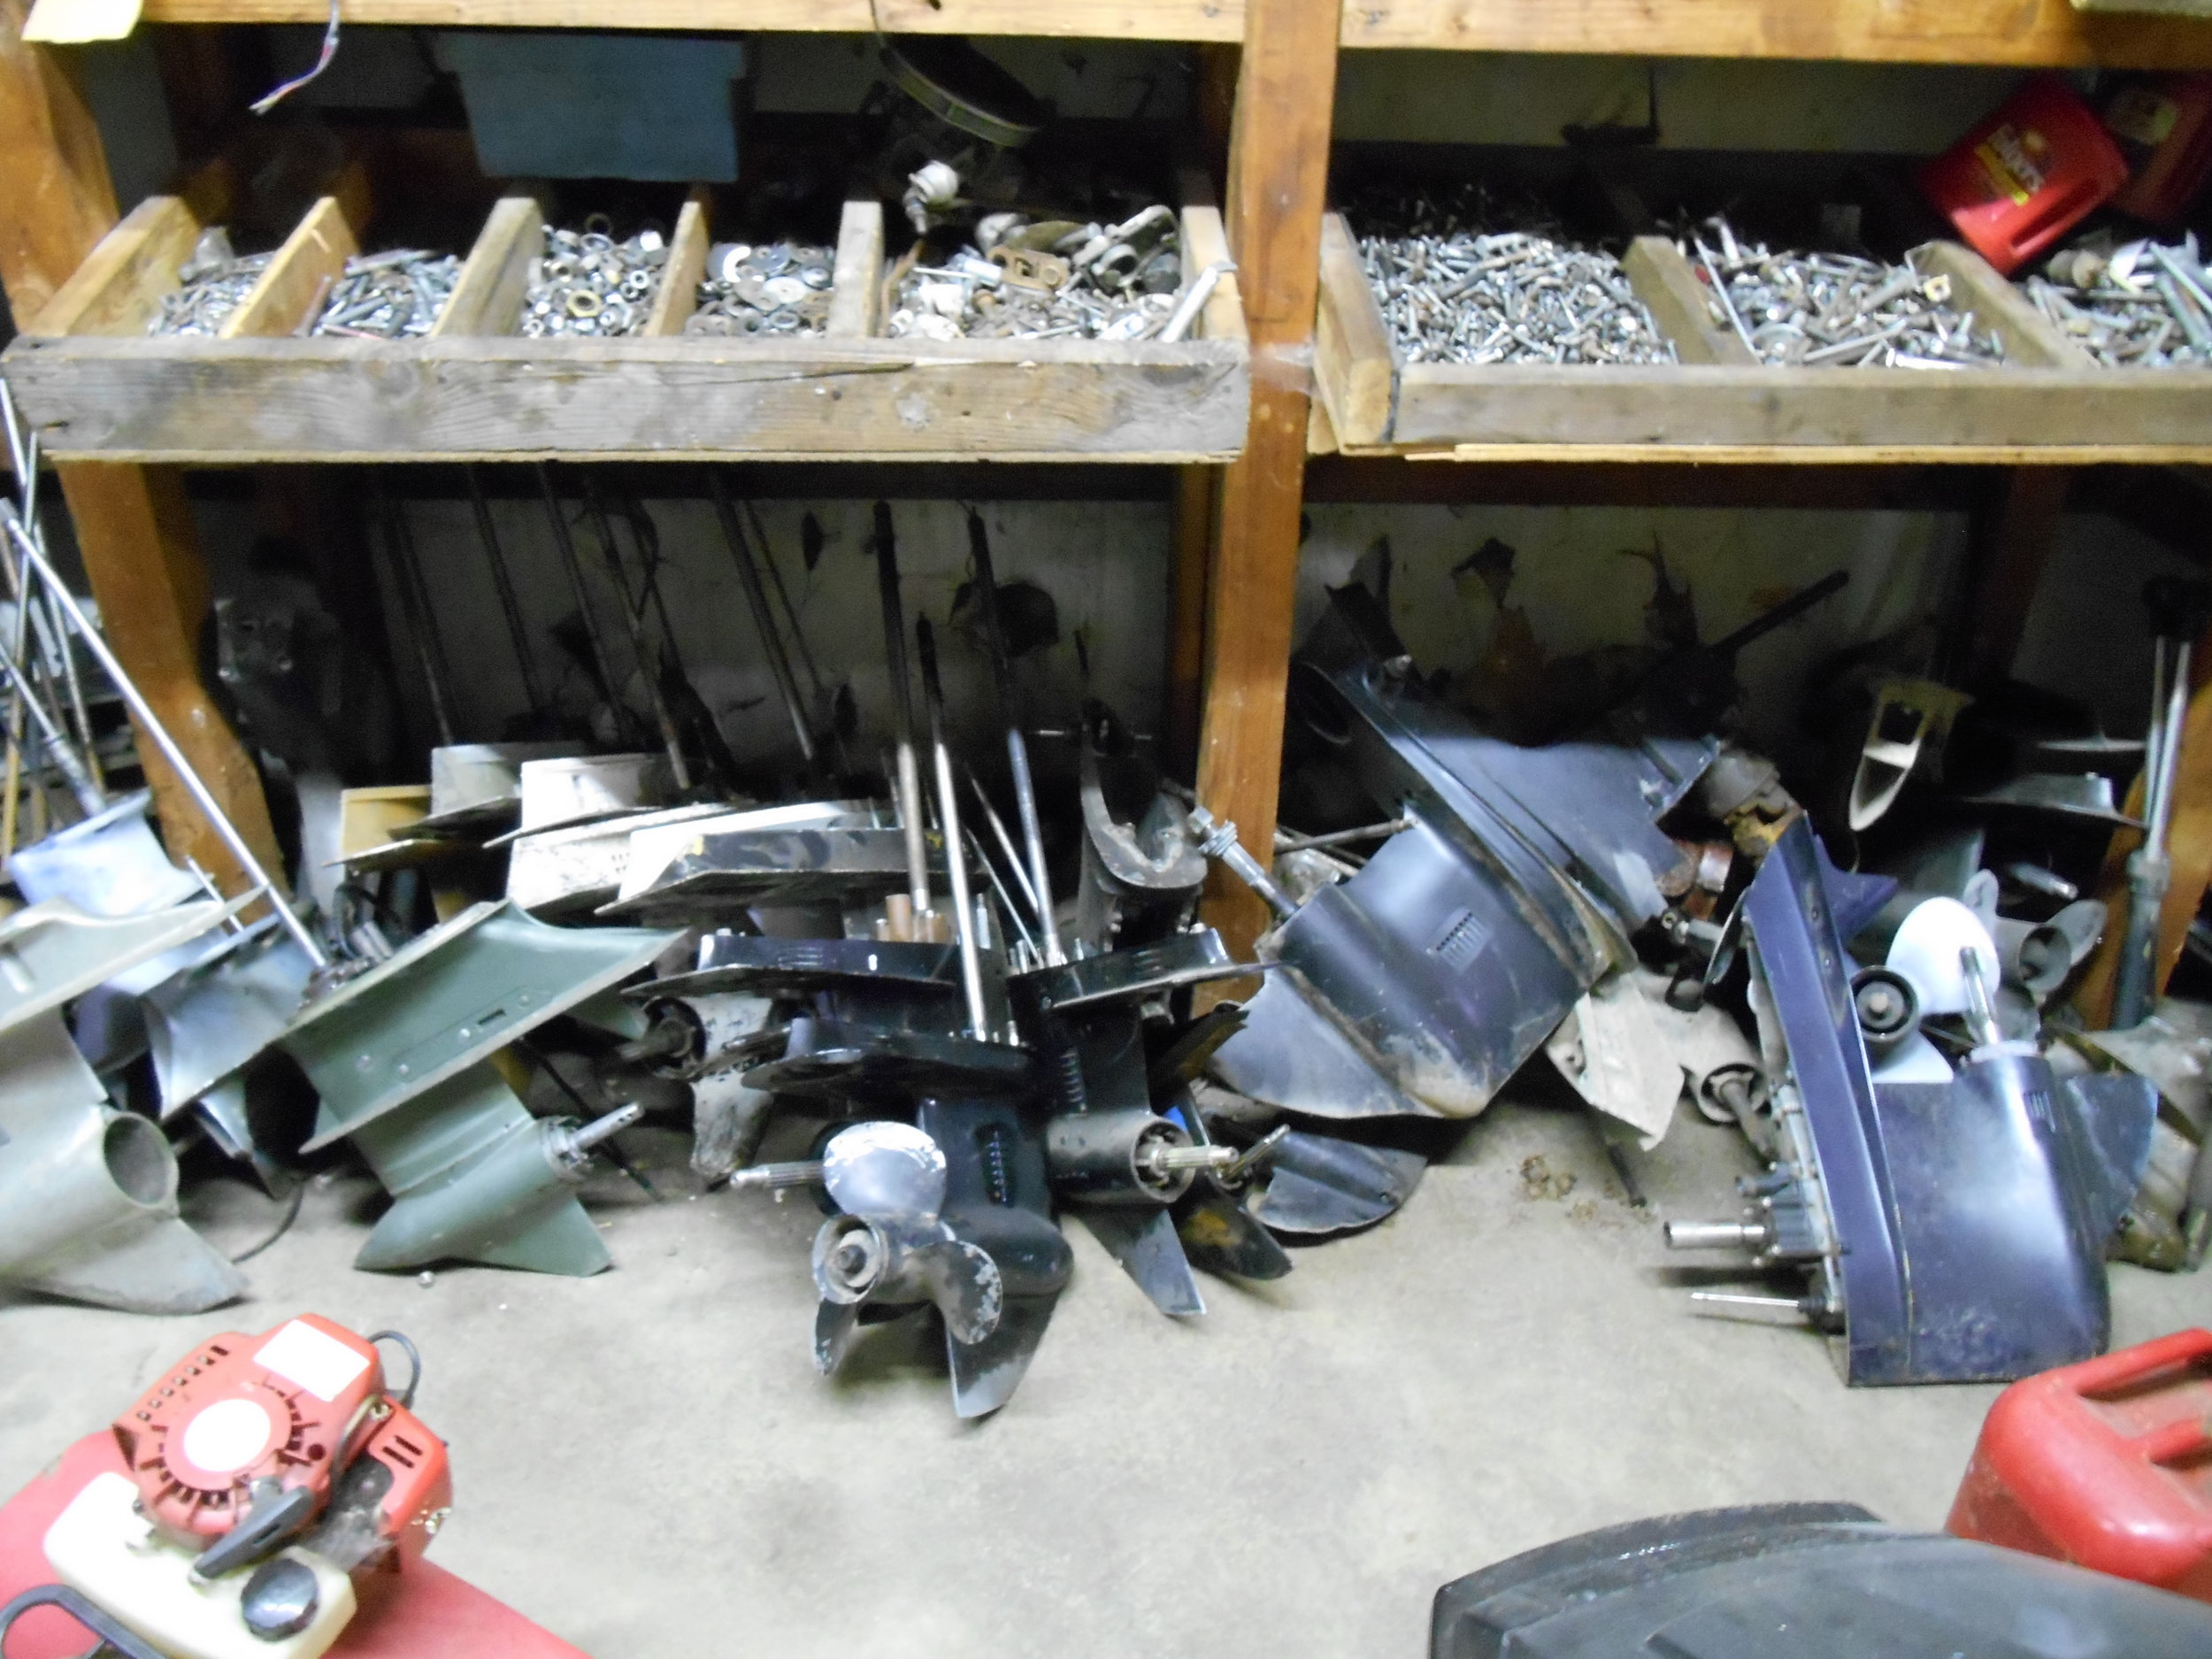 We have a large selection of used parts and accessories on hand, mostly Evinrude, Johnson and Mercury. Also boat parts and trailer parts. Call for availability.